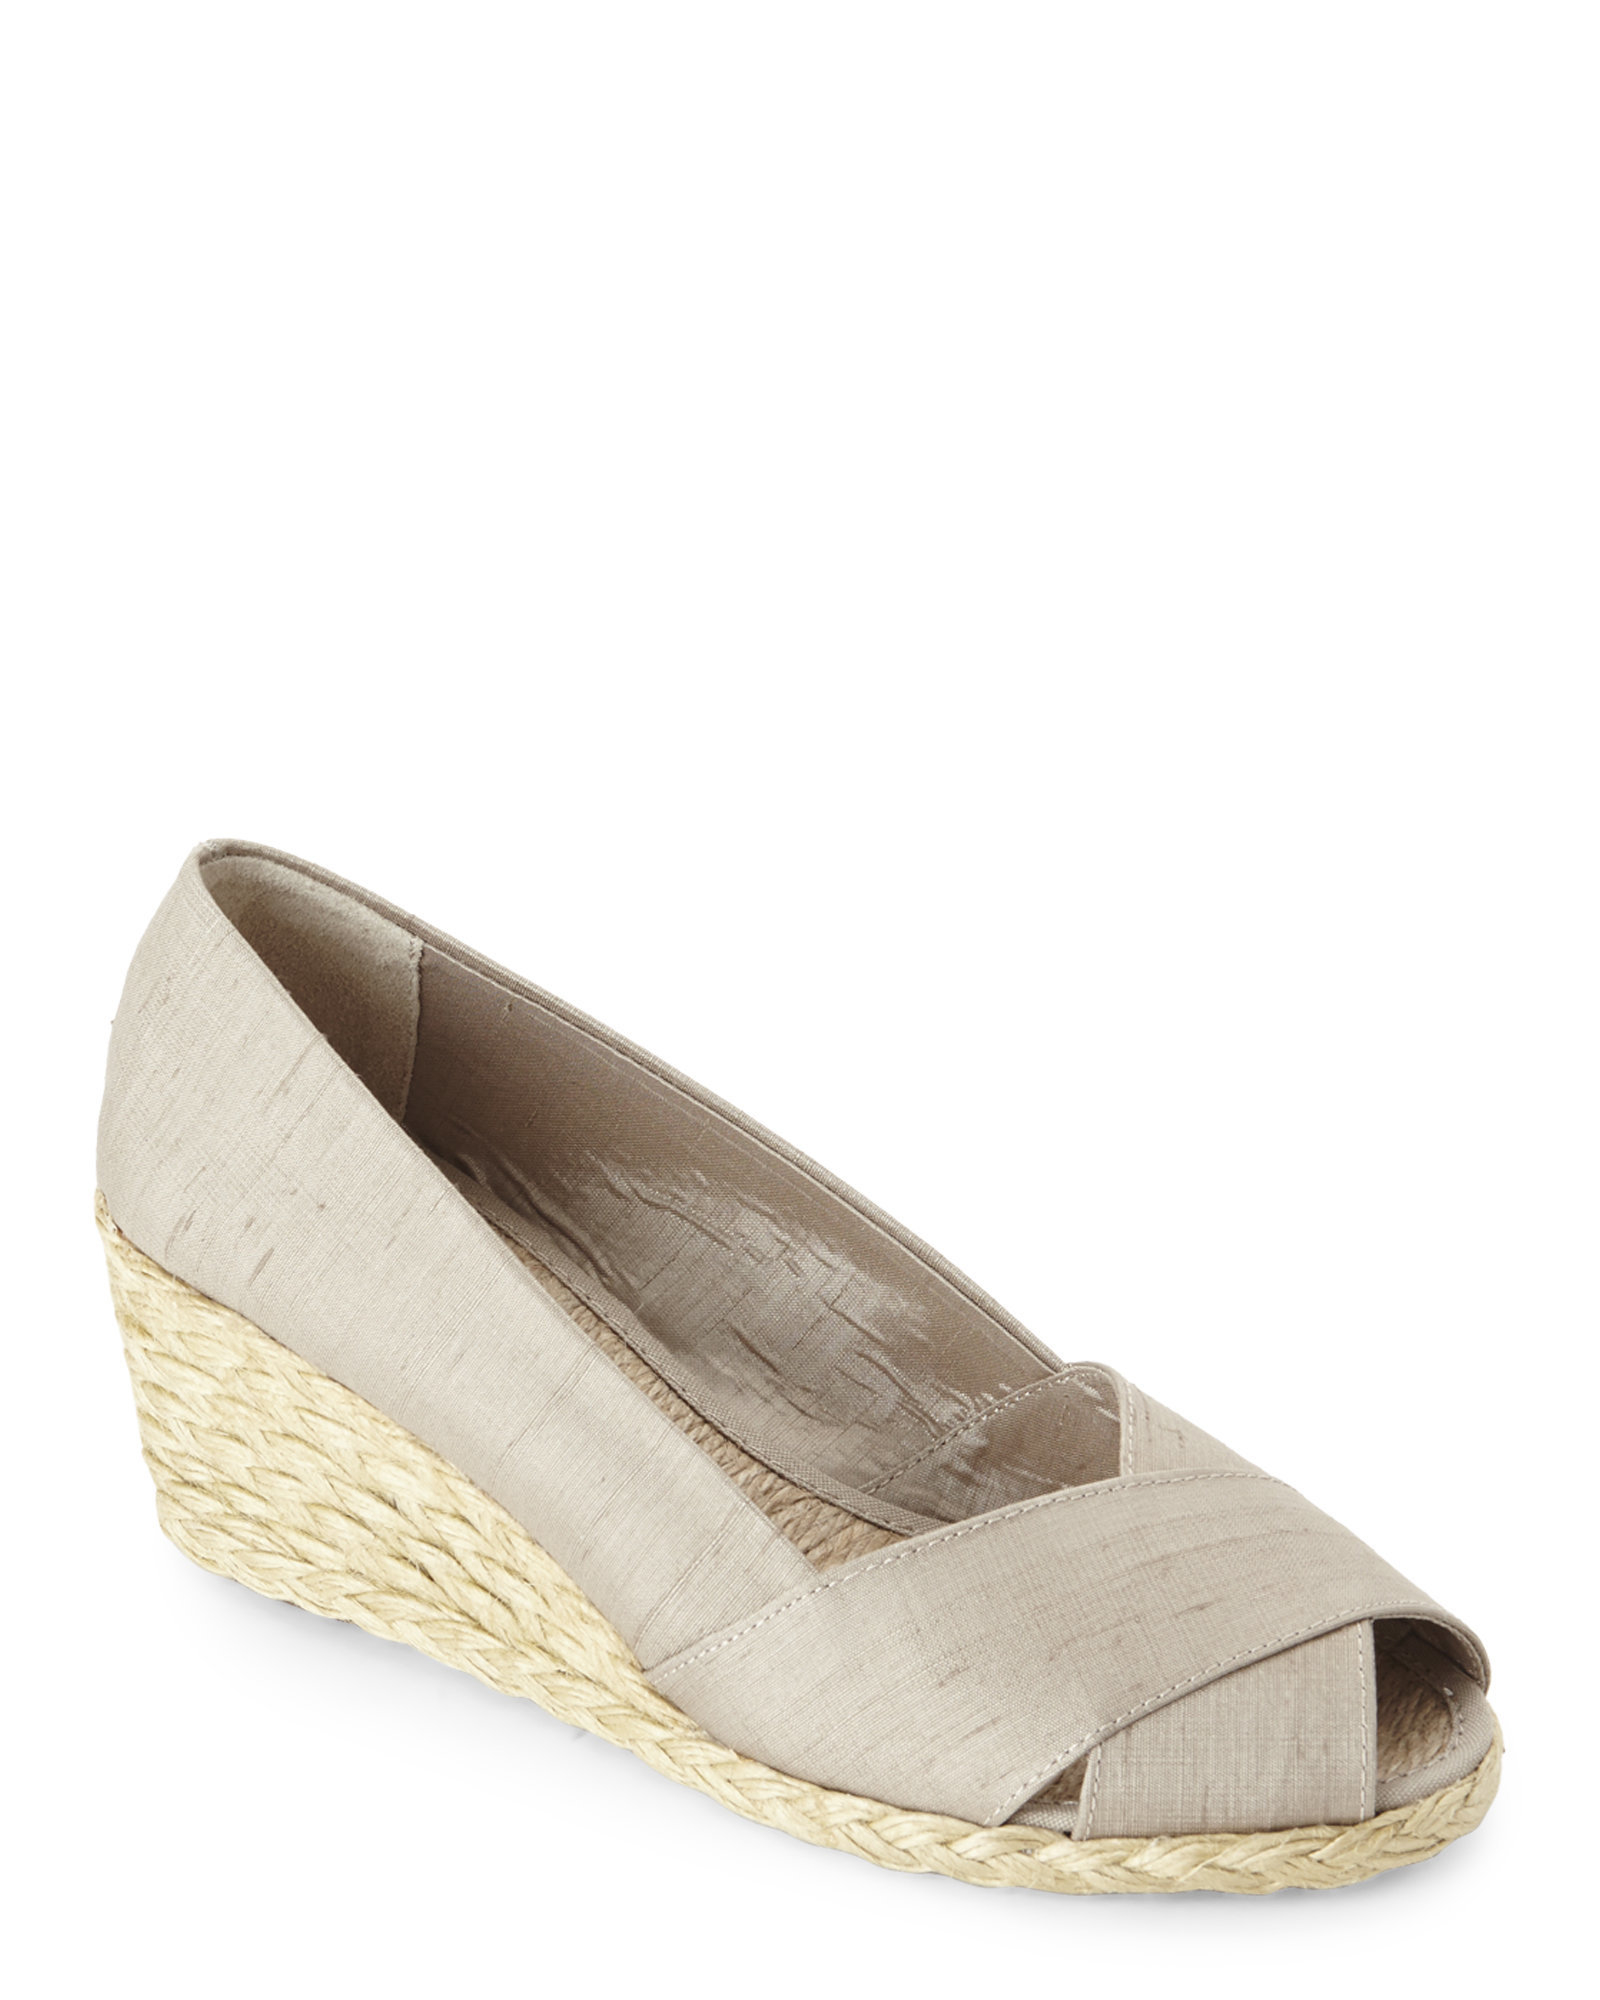 c9fc836fb90 Lyst - Ralph Lauren Cecilia Wedge Espadrilles in Natural